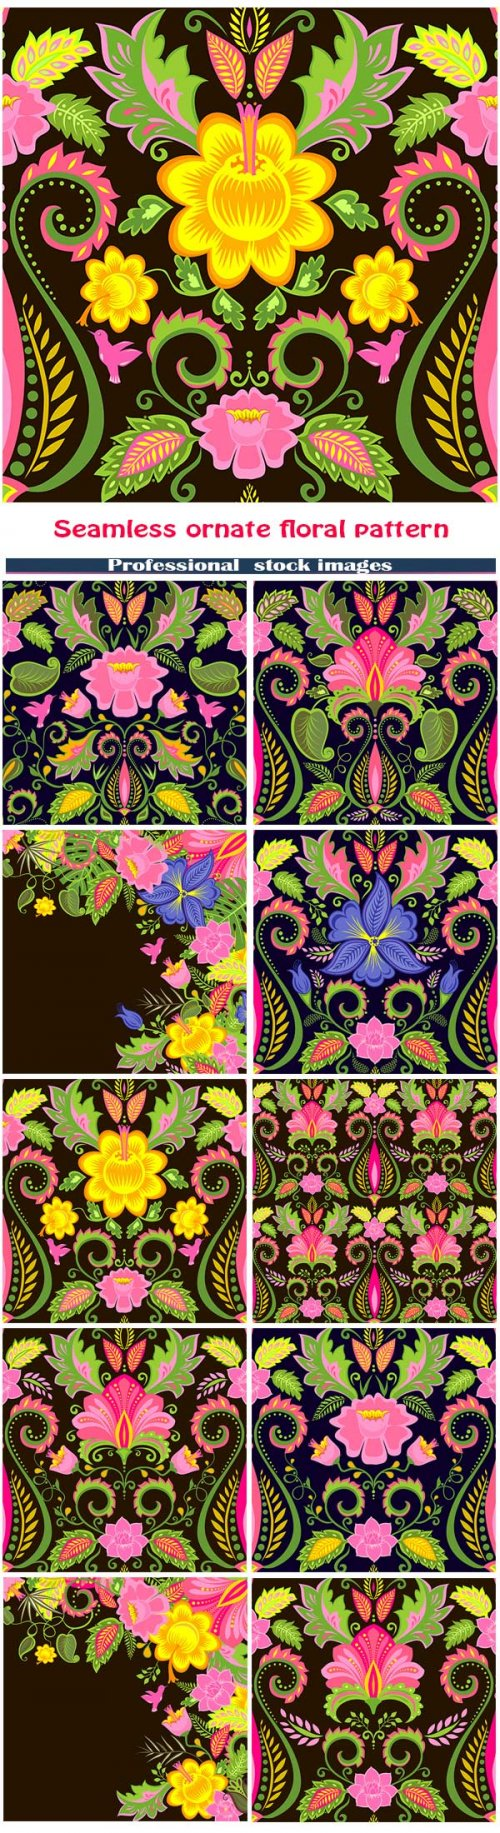 Seamless background with ornate floral pattern